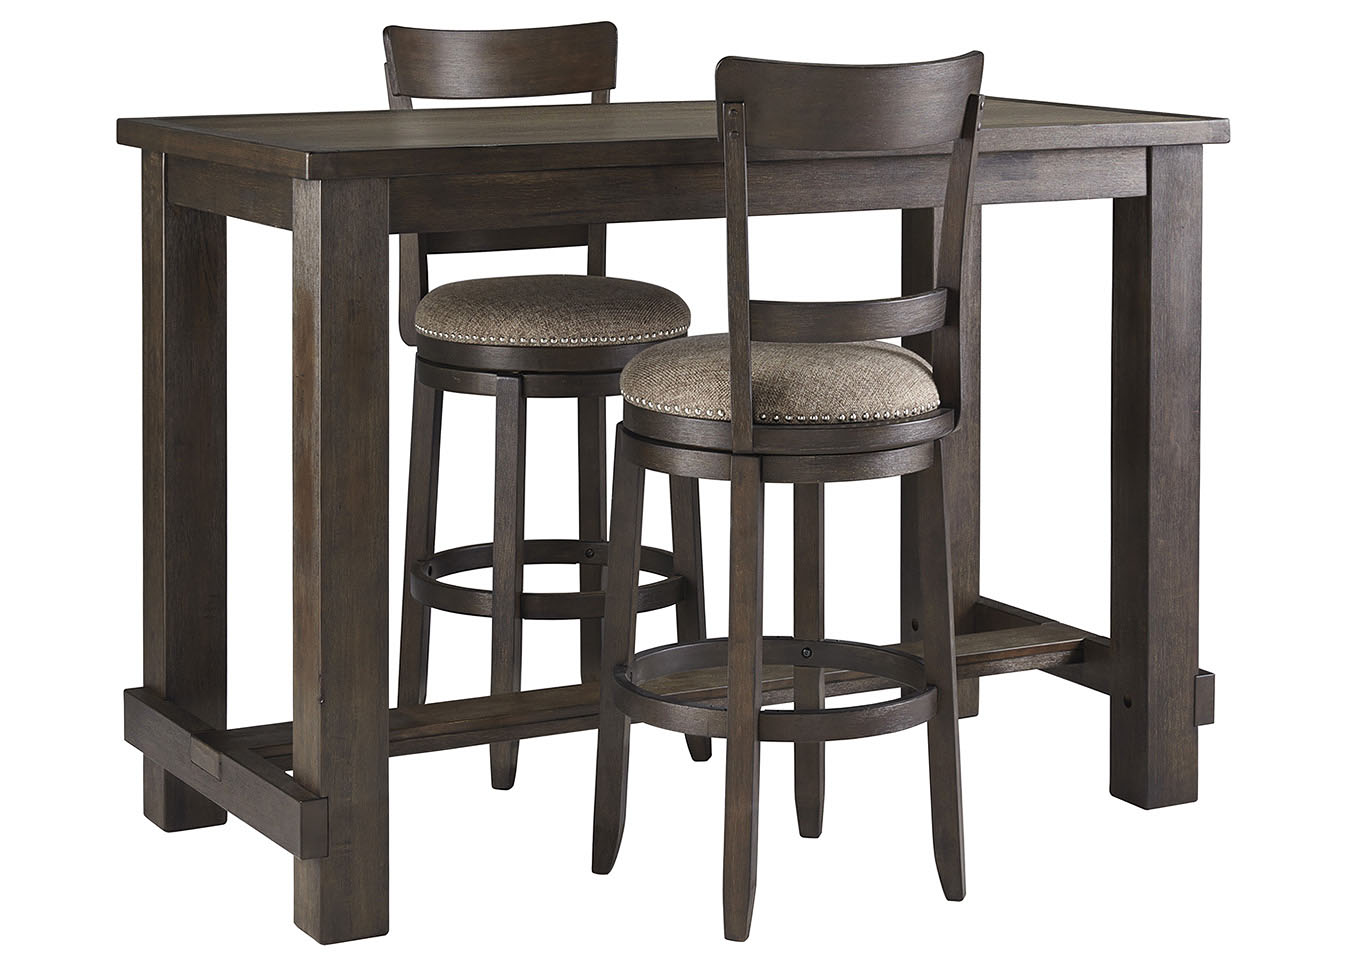 Drewing Brown Bar Table w/2 Upholstered Barstools,Signature Design By Ashley